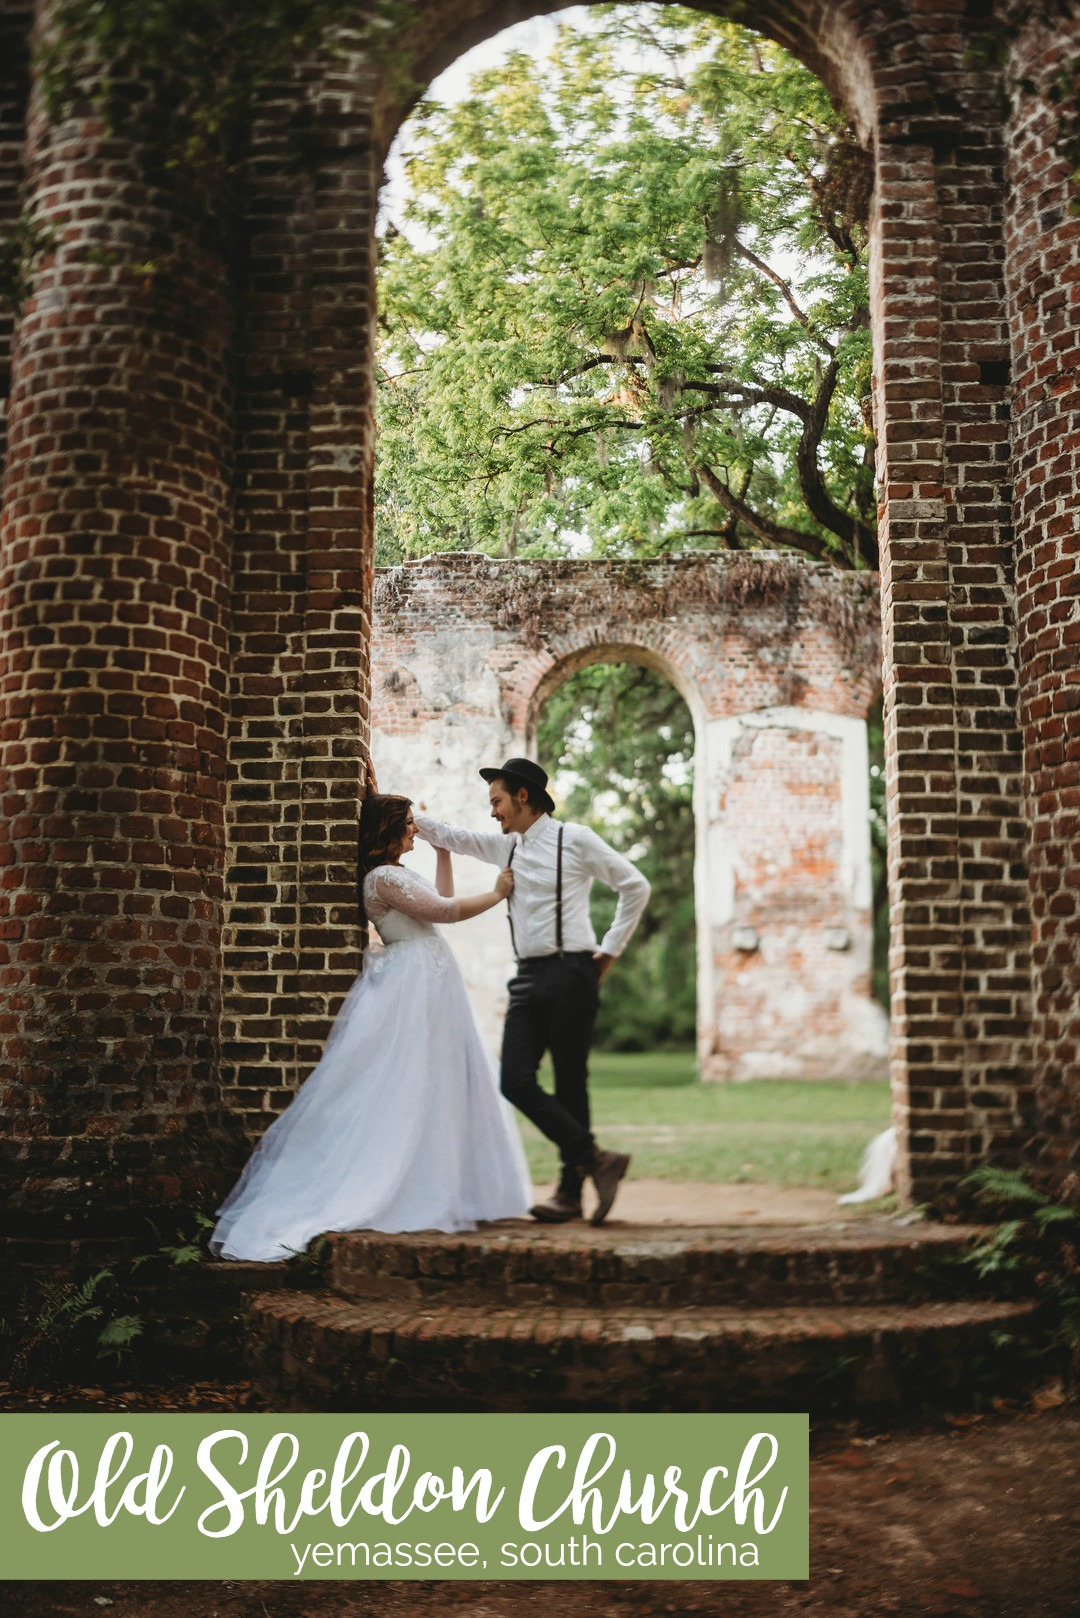 Romantic Ruins: Old Sheldon Church Wedding Styled Shoot | Palmetto State Weddings | Nikki Morgan Photography | Beaufort weddings | historic venues in South Carolina